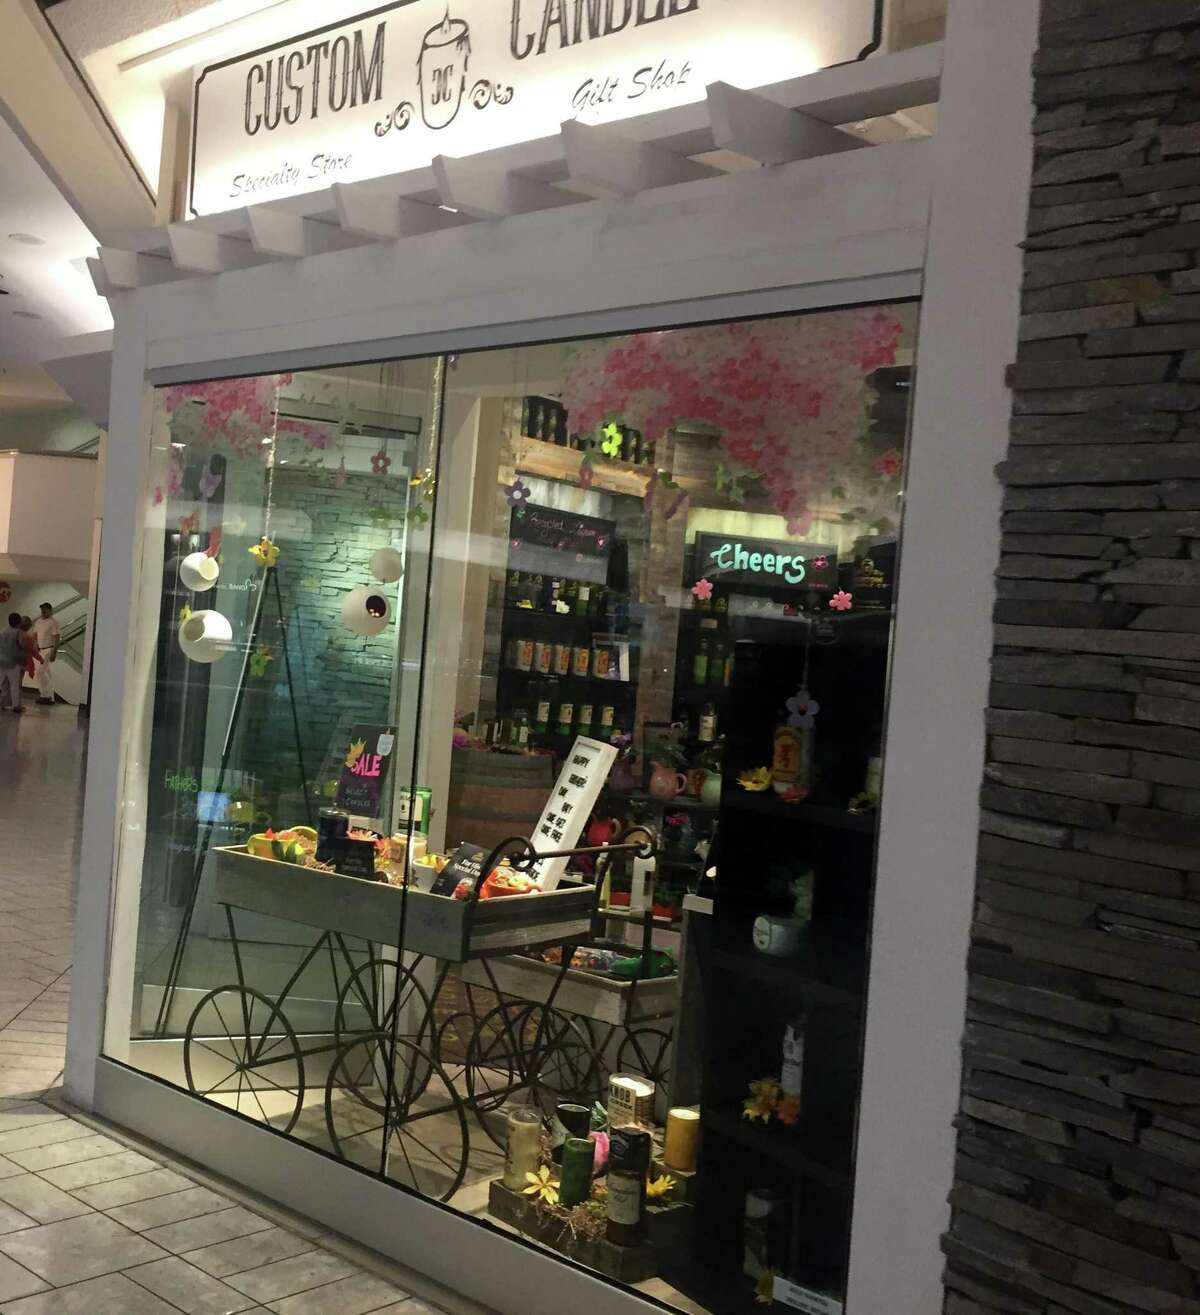 Custom Candle Co. opened its store at Stamford Town Center in April 2019.